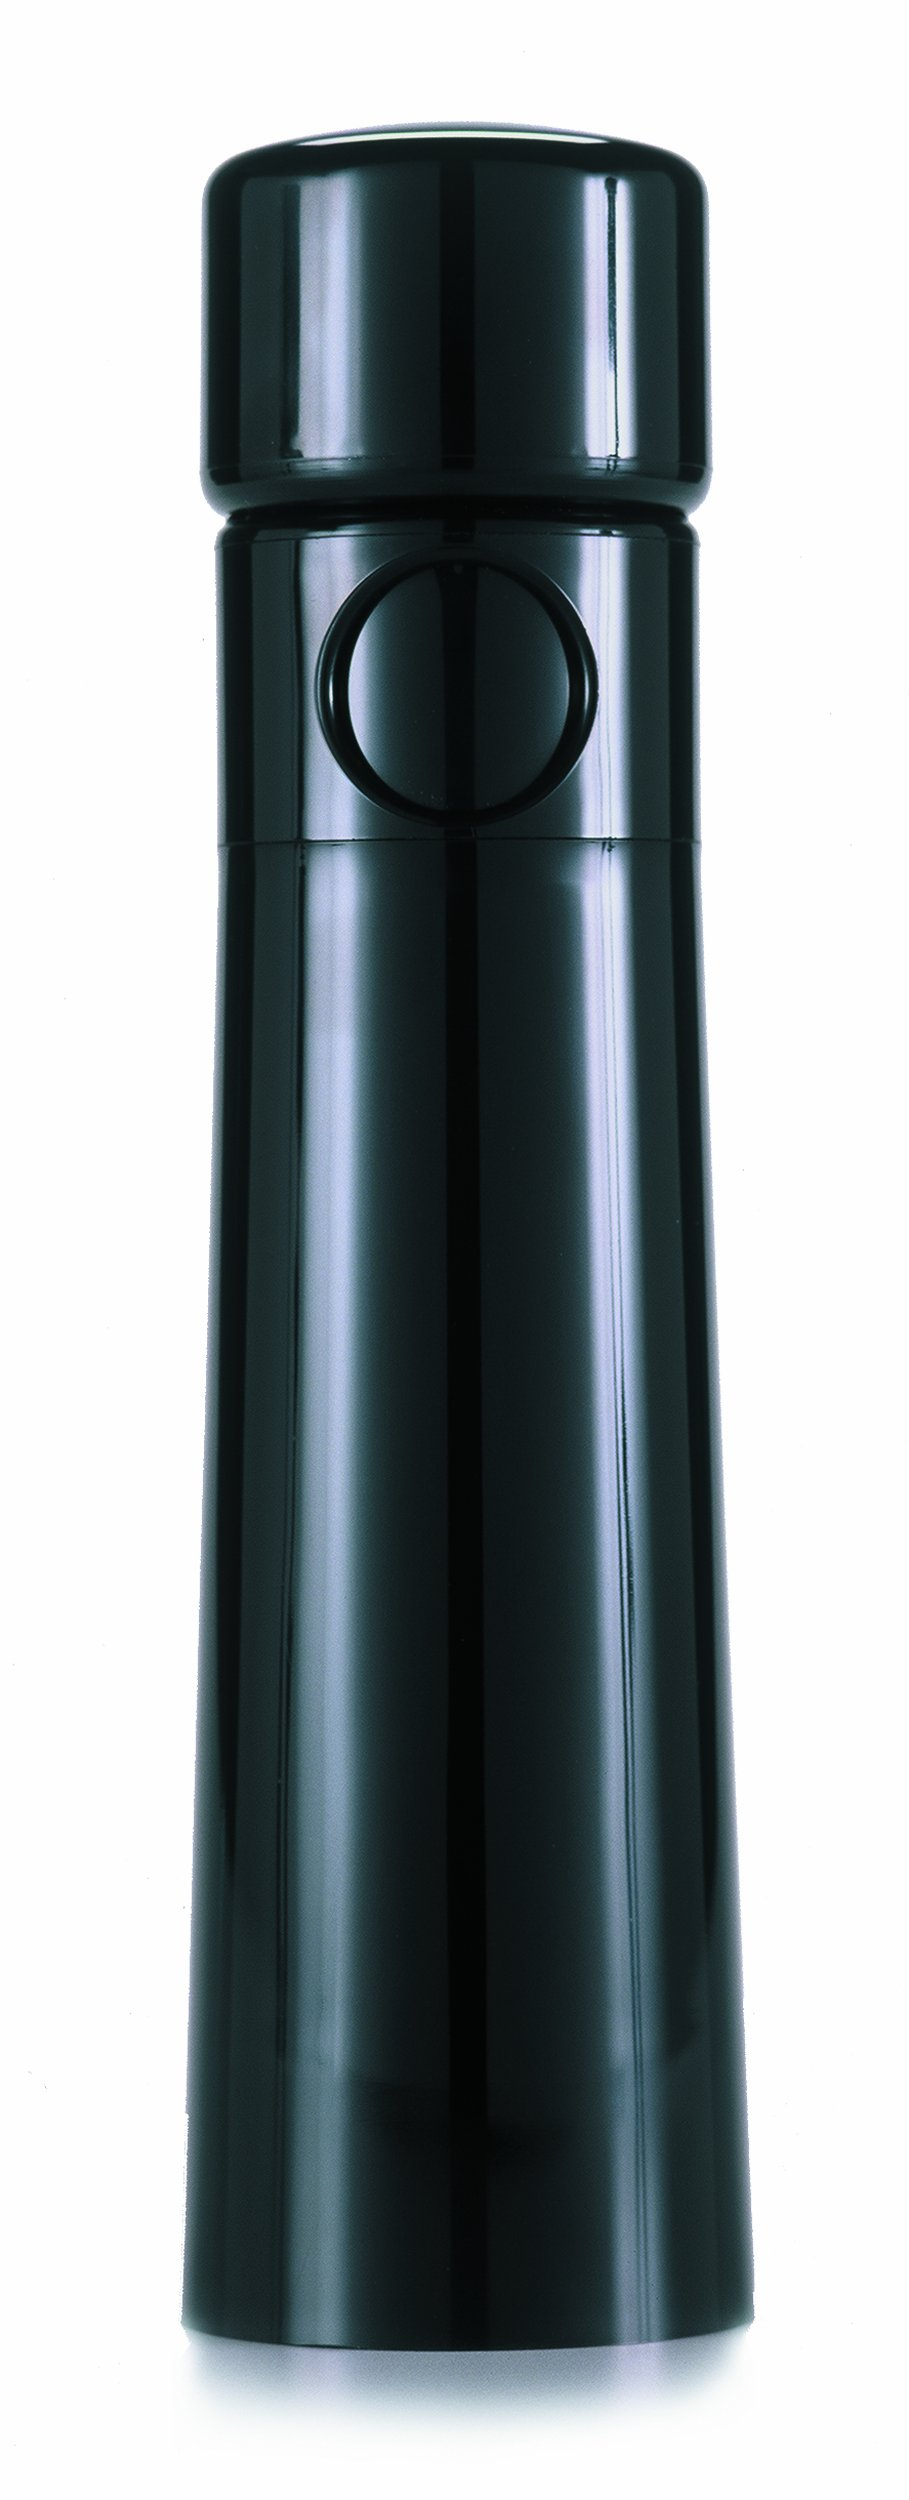 Unicorn Magnum Plus Pepper Mill 9'' Black by Unicorn